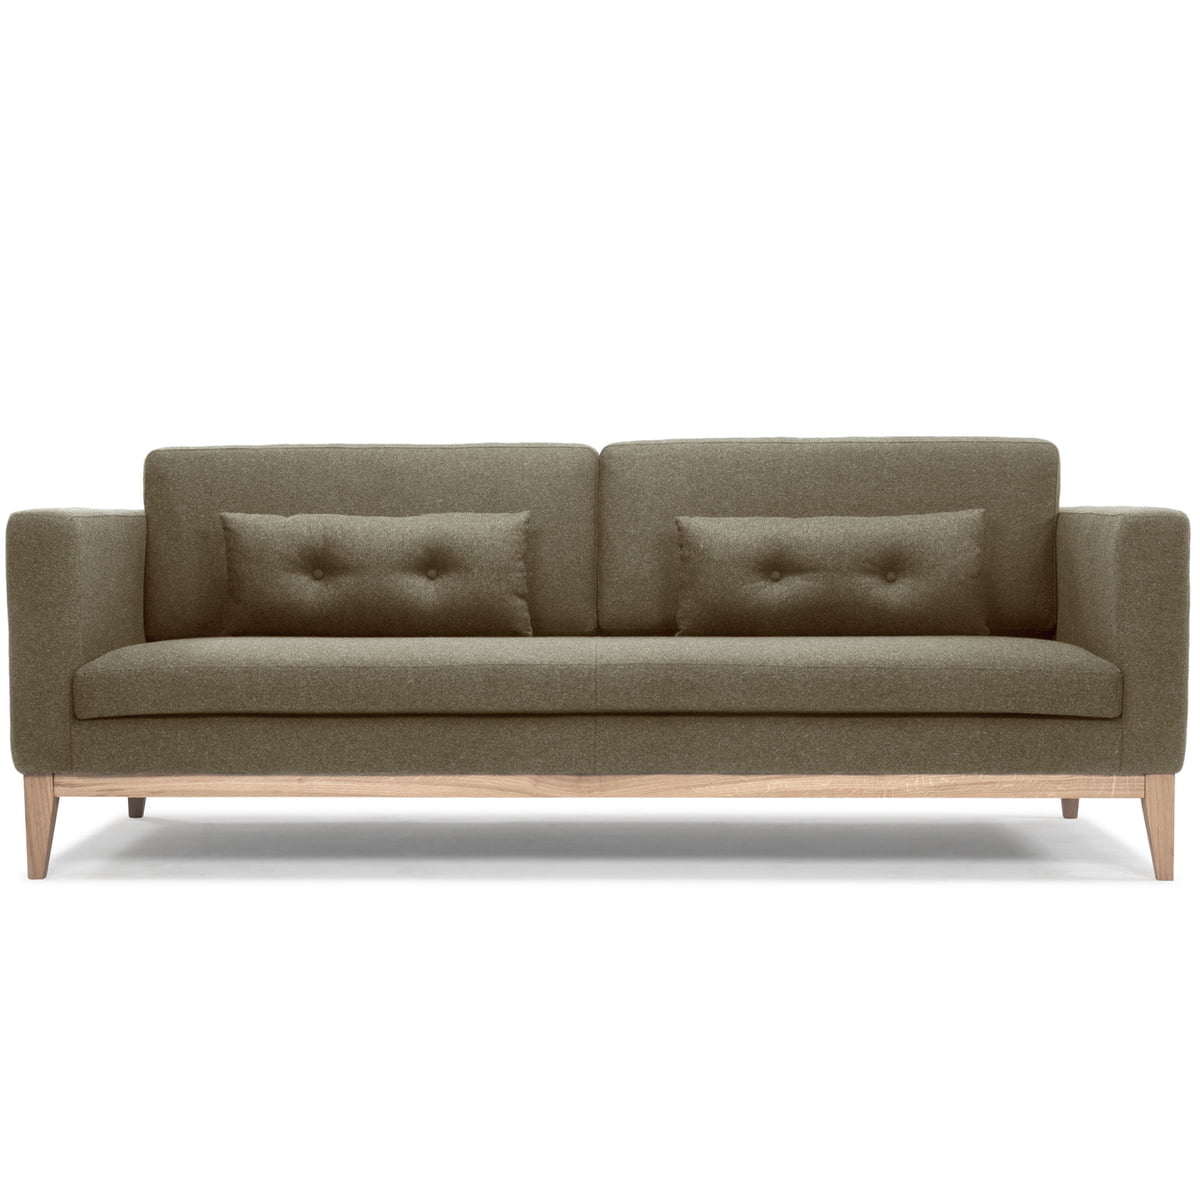 The Day Sofa By Design House Stockholm In Army Green